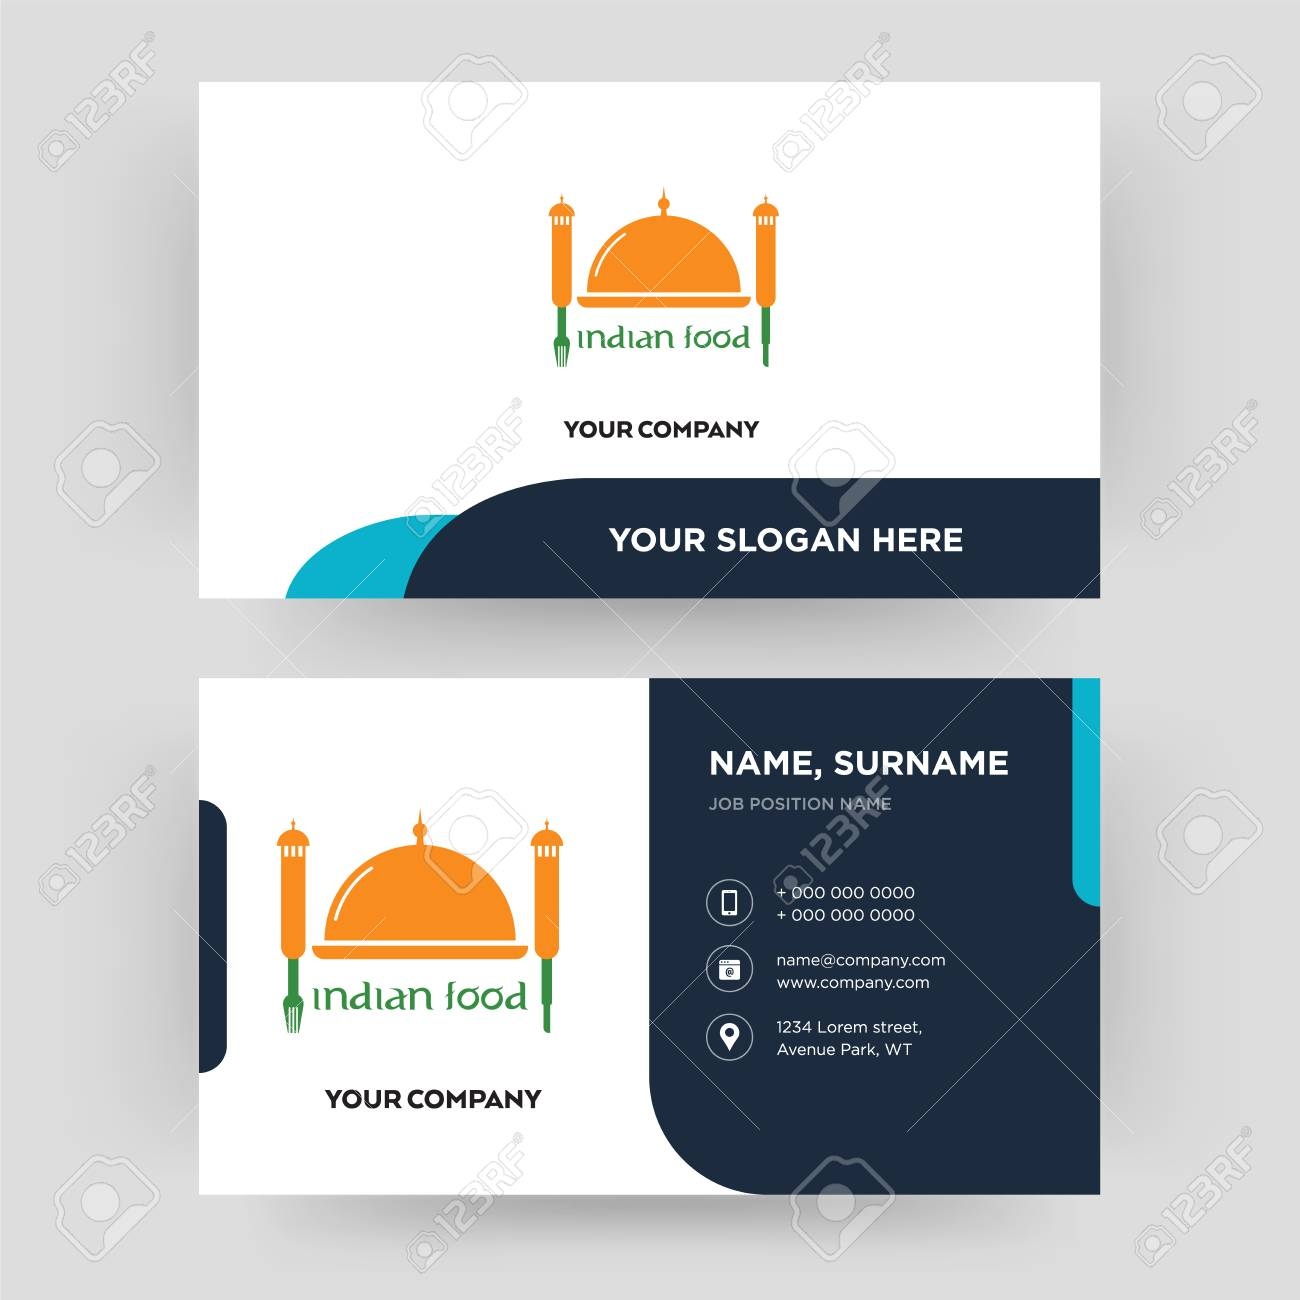 Indian Food Business Card Design Template Visiting For Your